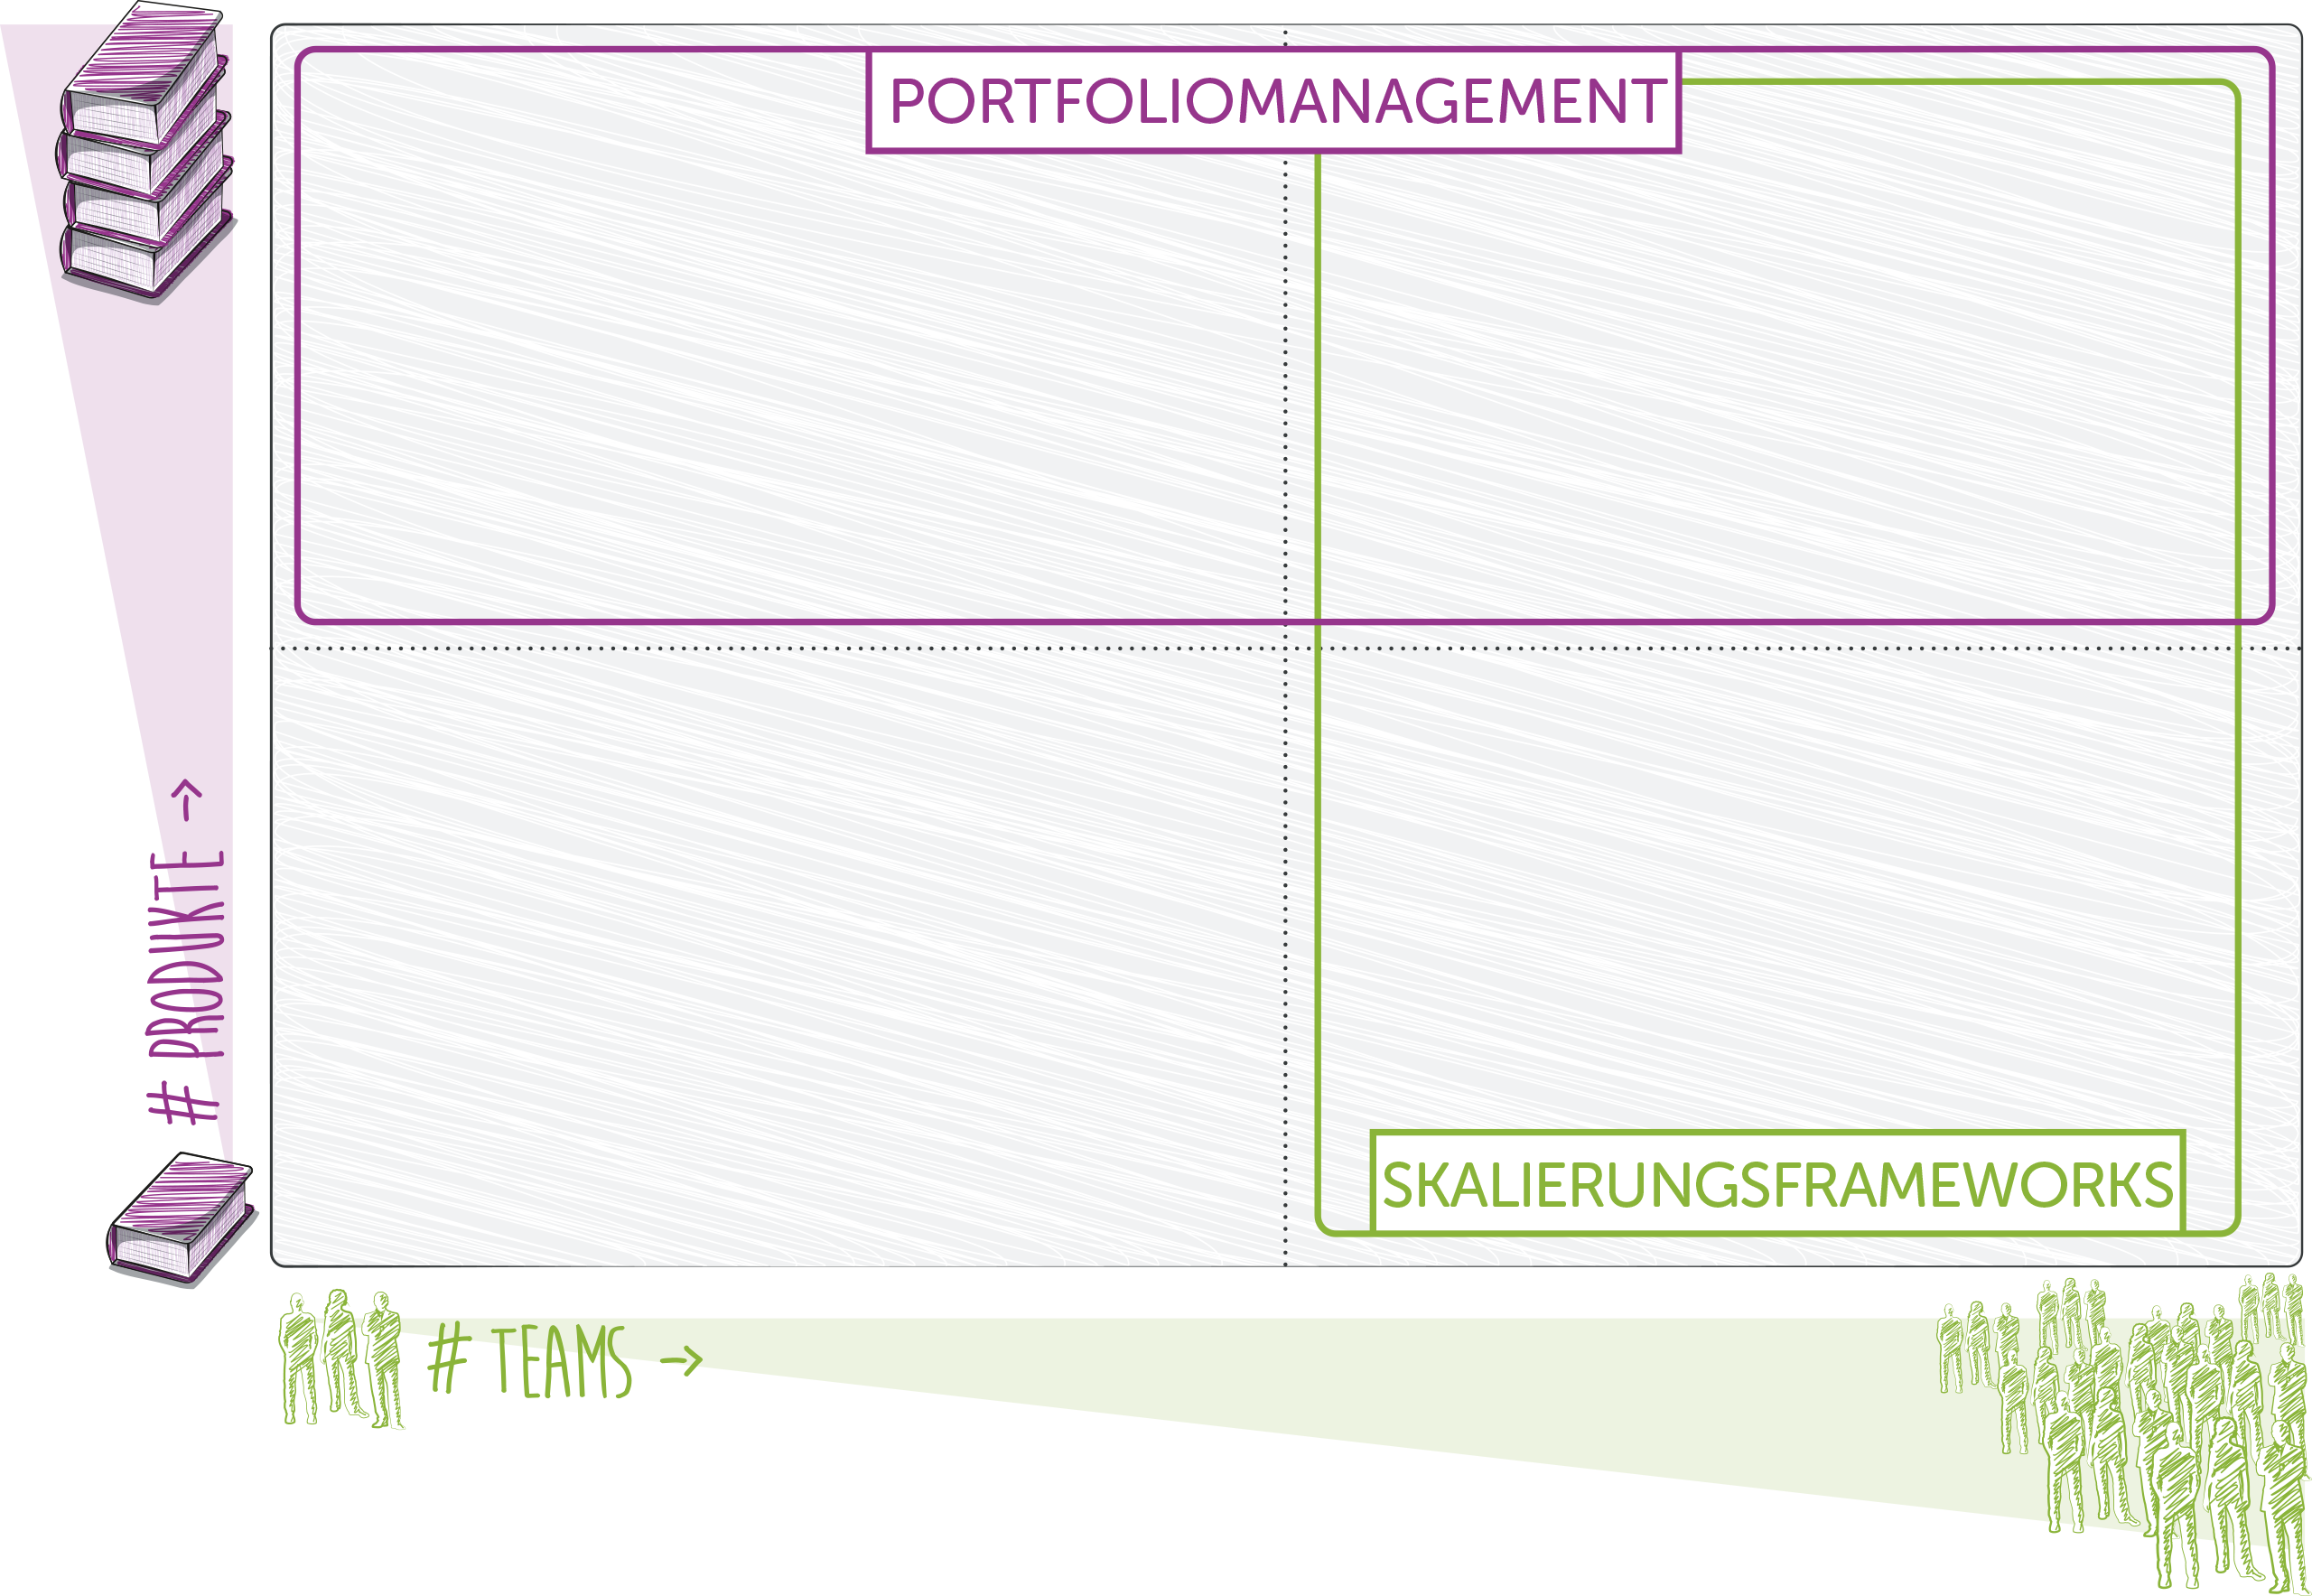 Portfoliomanagement.png